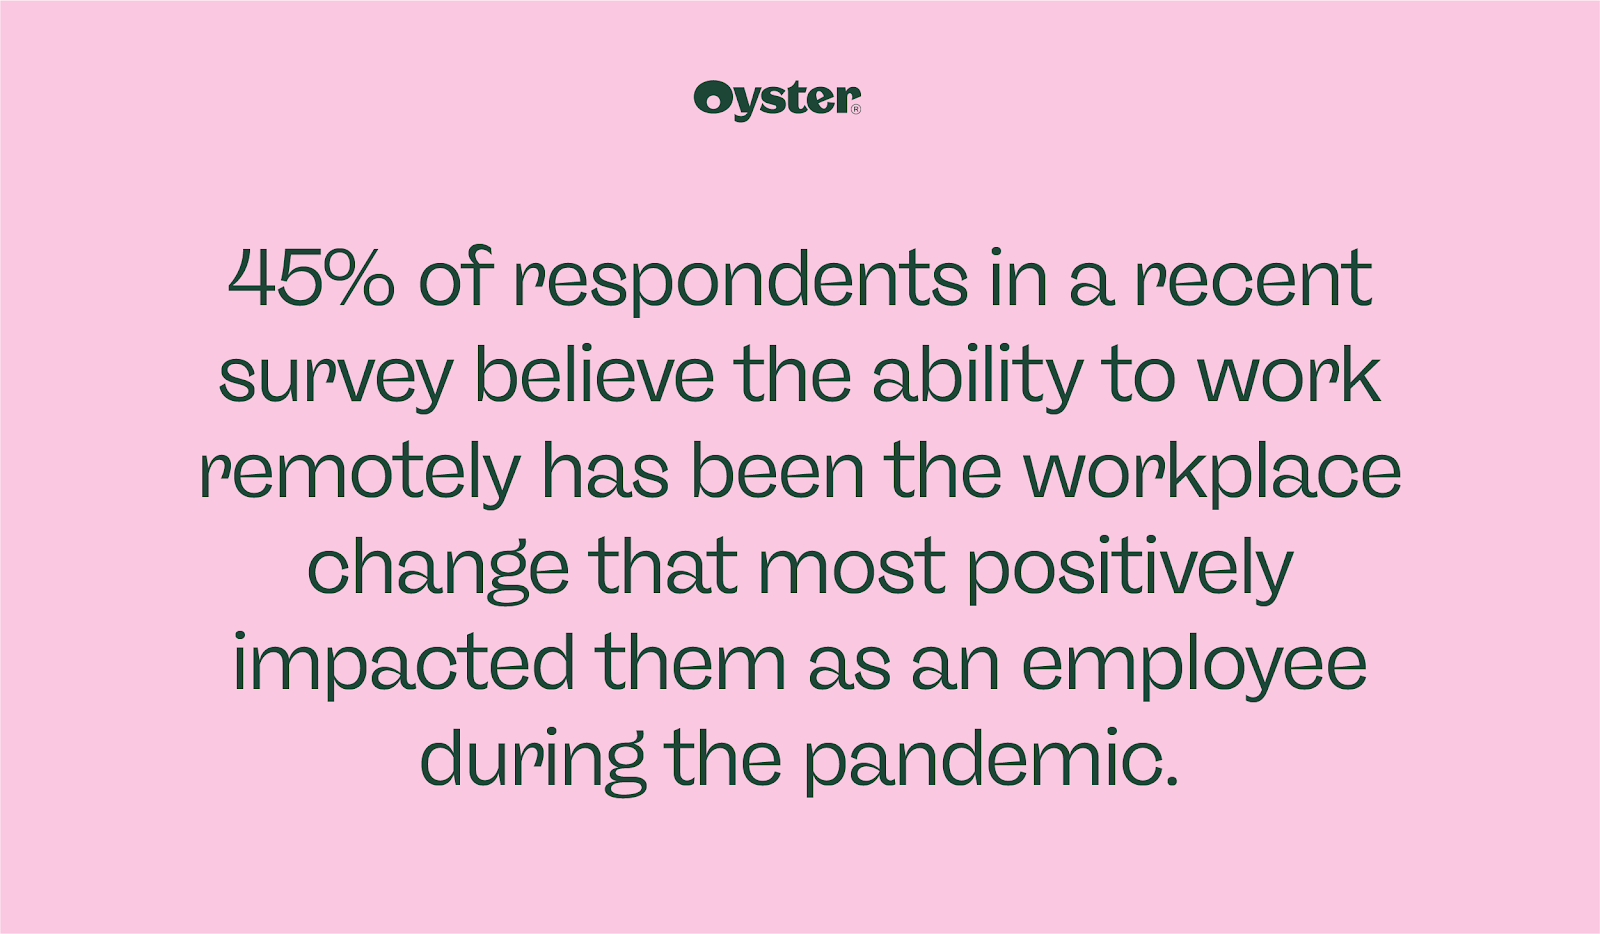 45% of respondents believe being able to work remotely has positively impacted them